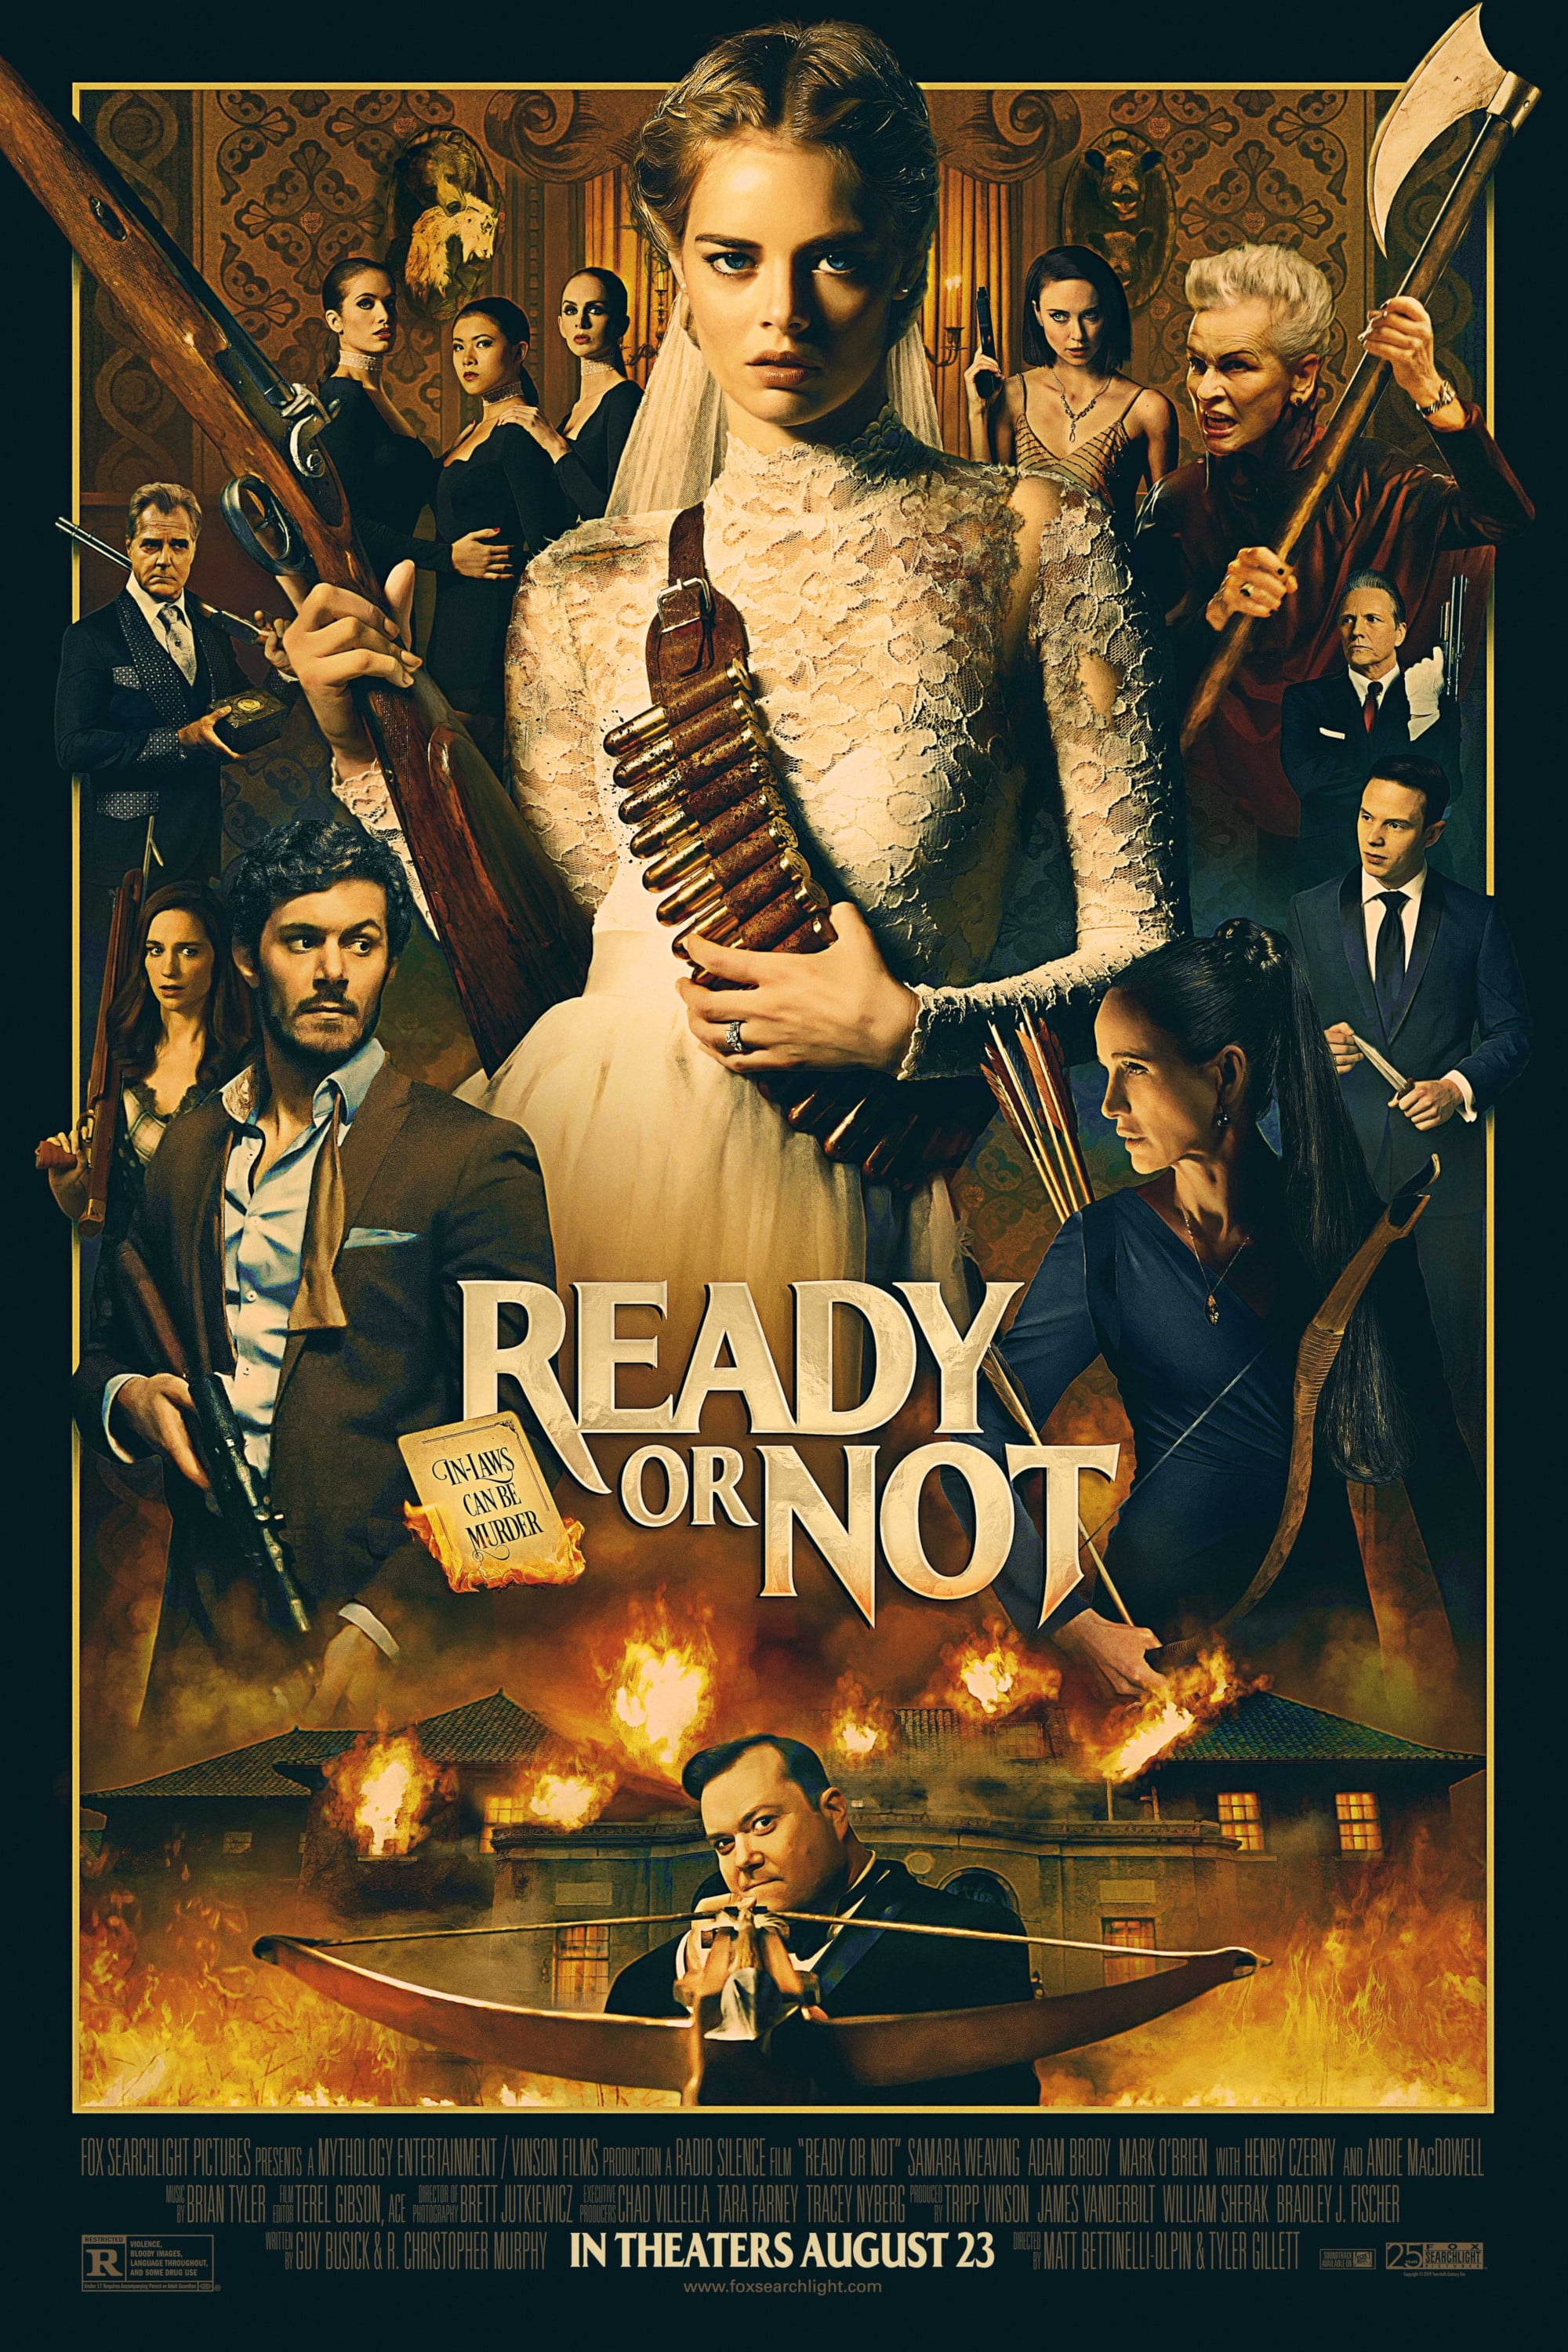 Ready or not film trailer